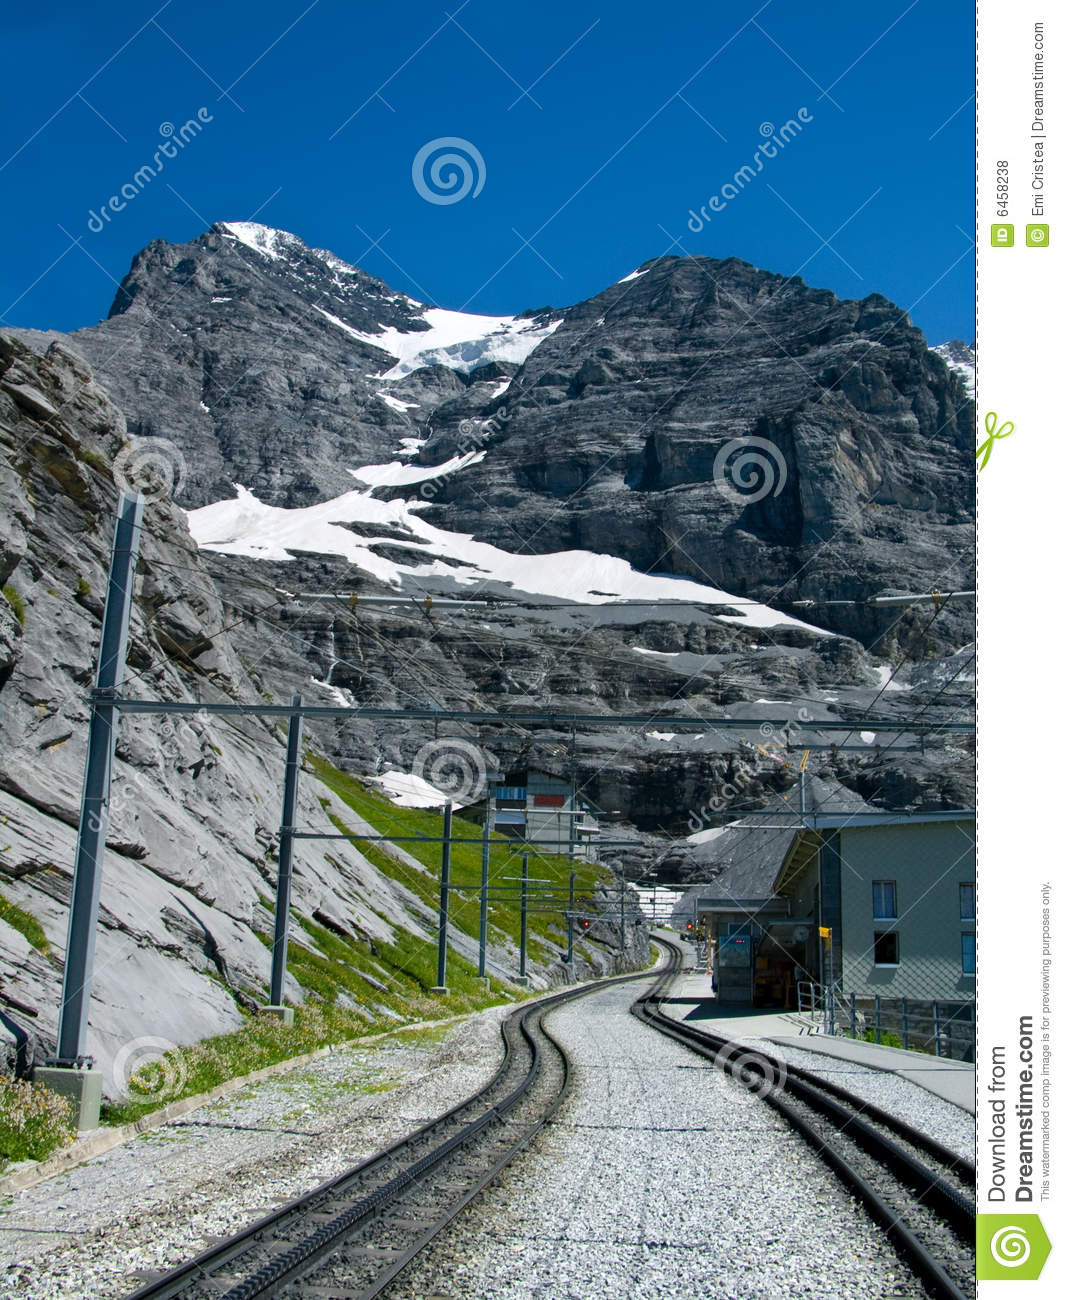 Railway in Eiger mountain